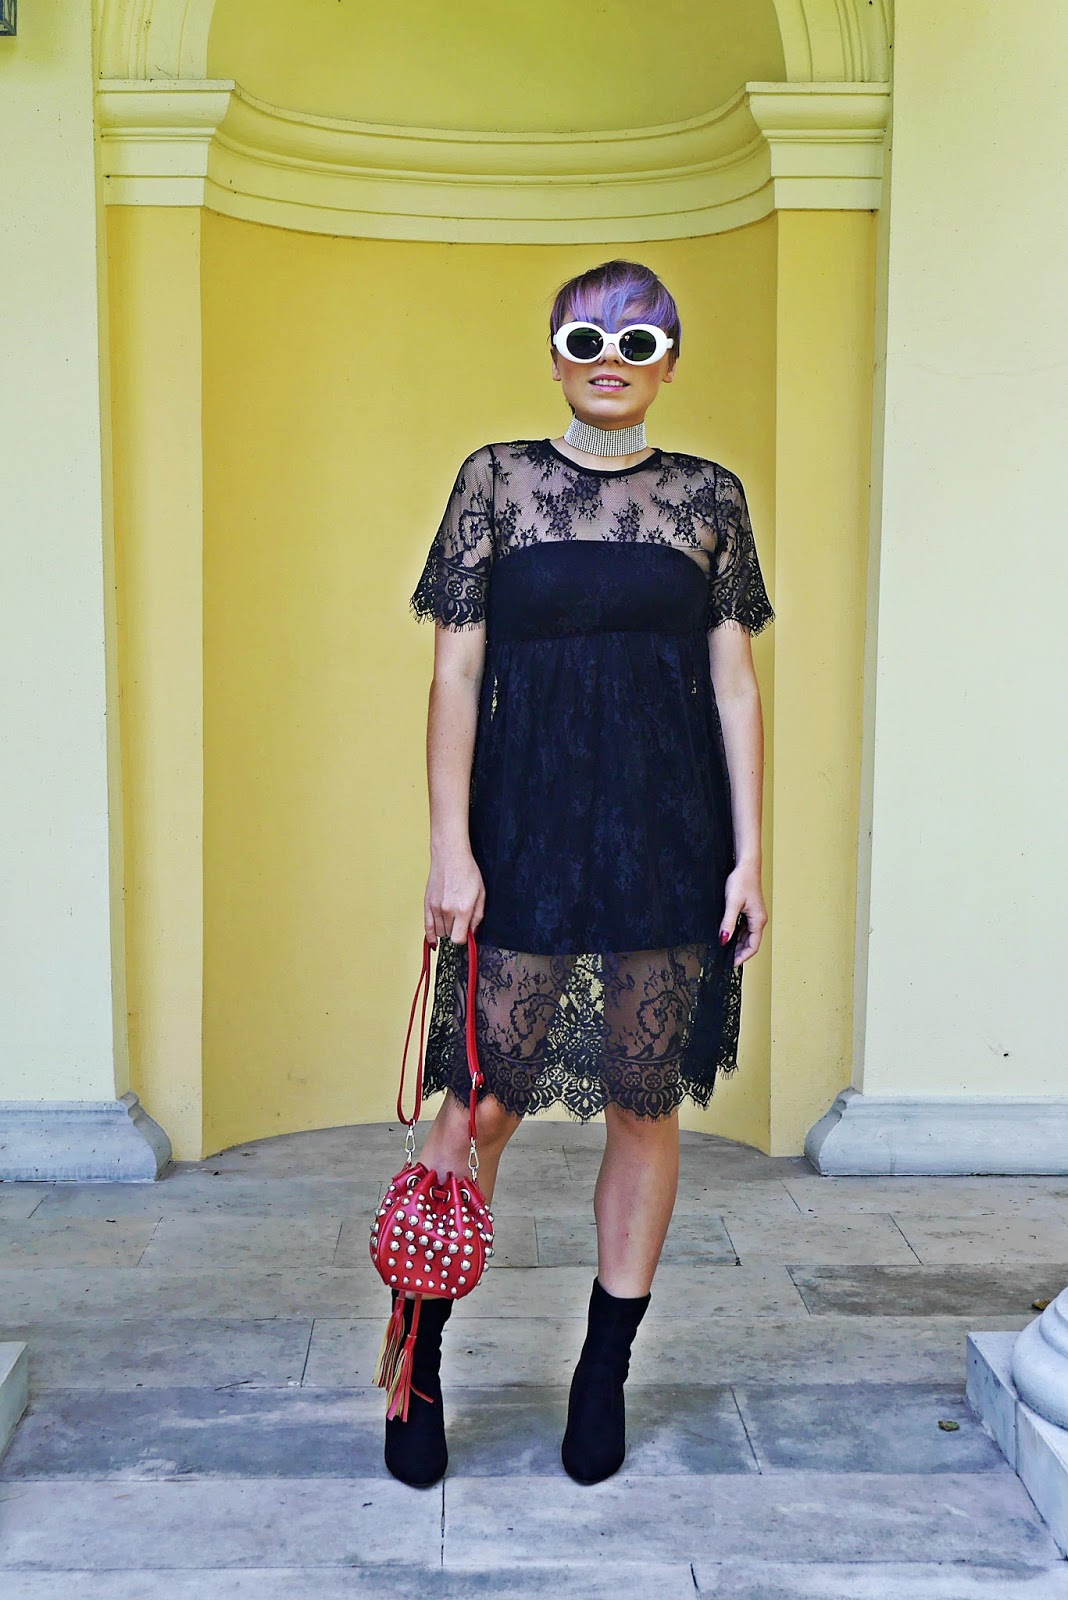 1_rosegal_lace_dress_red_bag_studs_socks_shoes_boots_white_retro_sunglass_karyn_blog_130917c